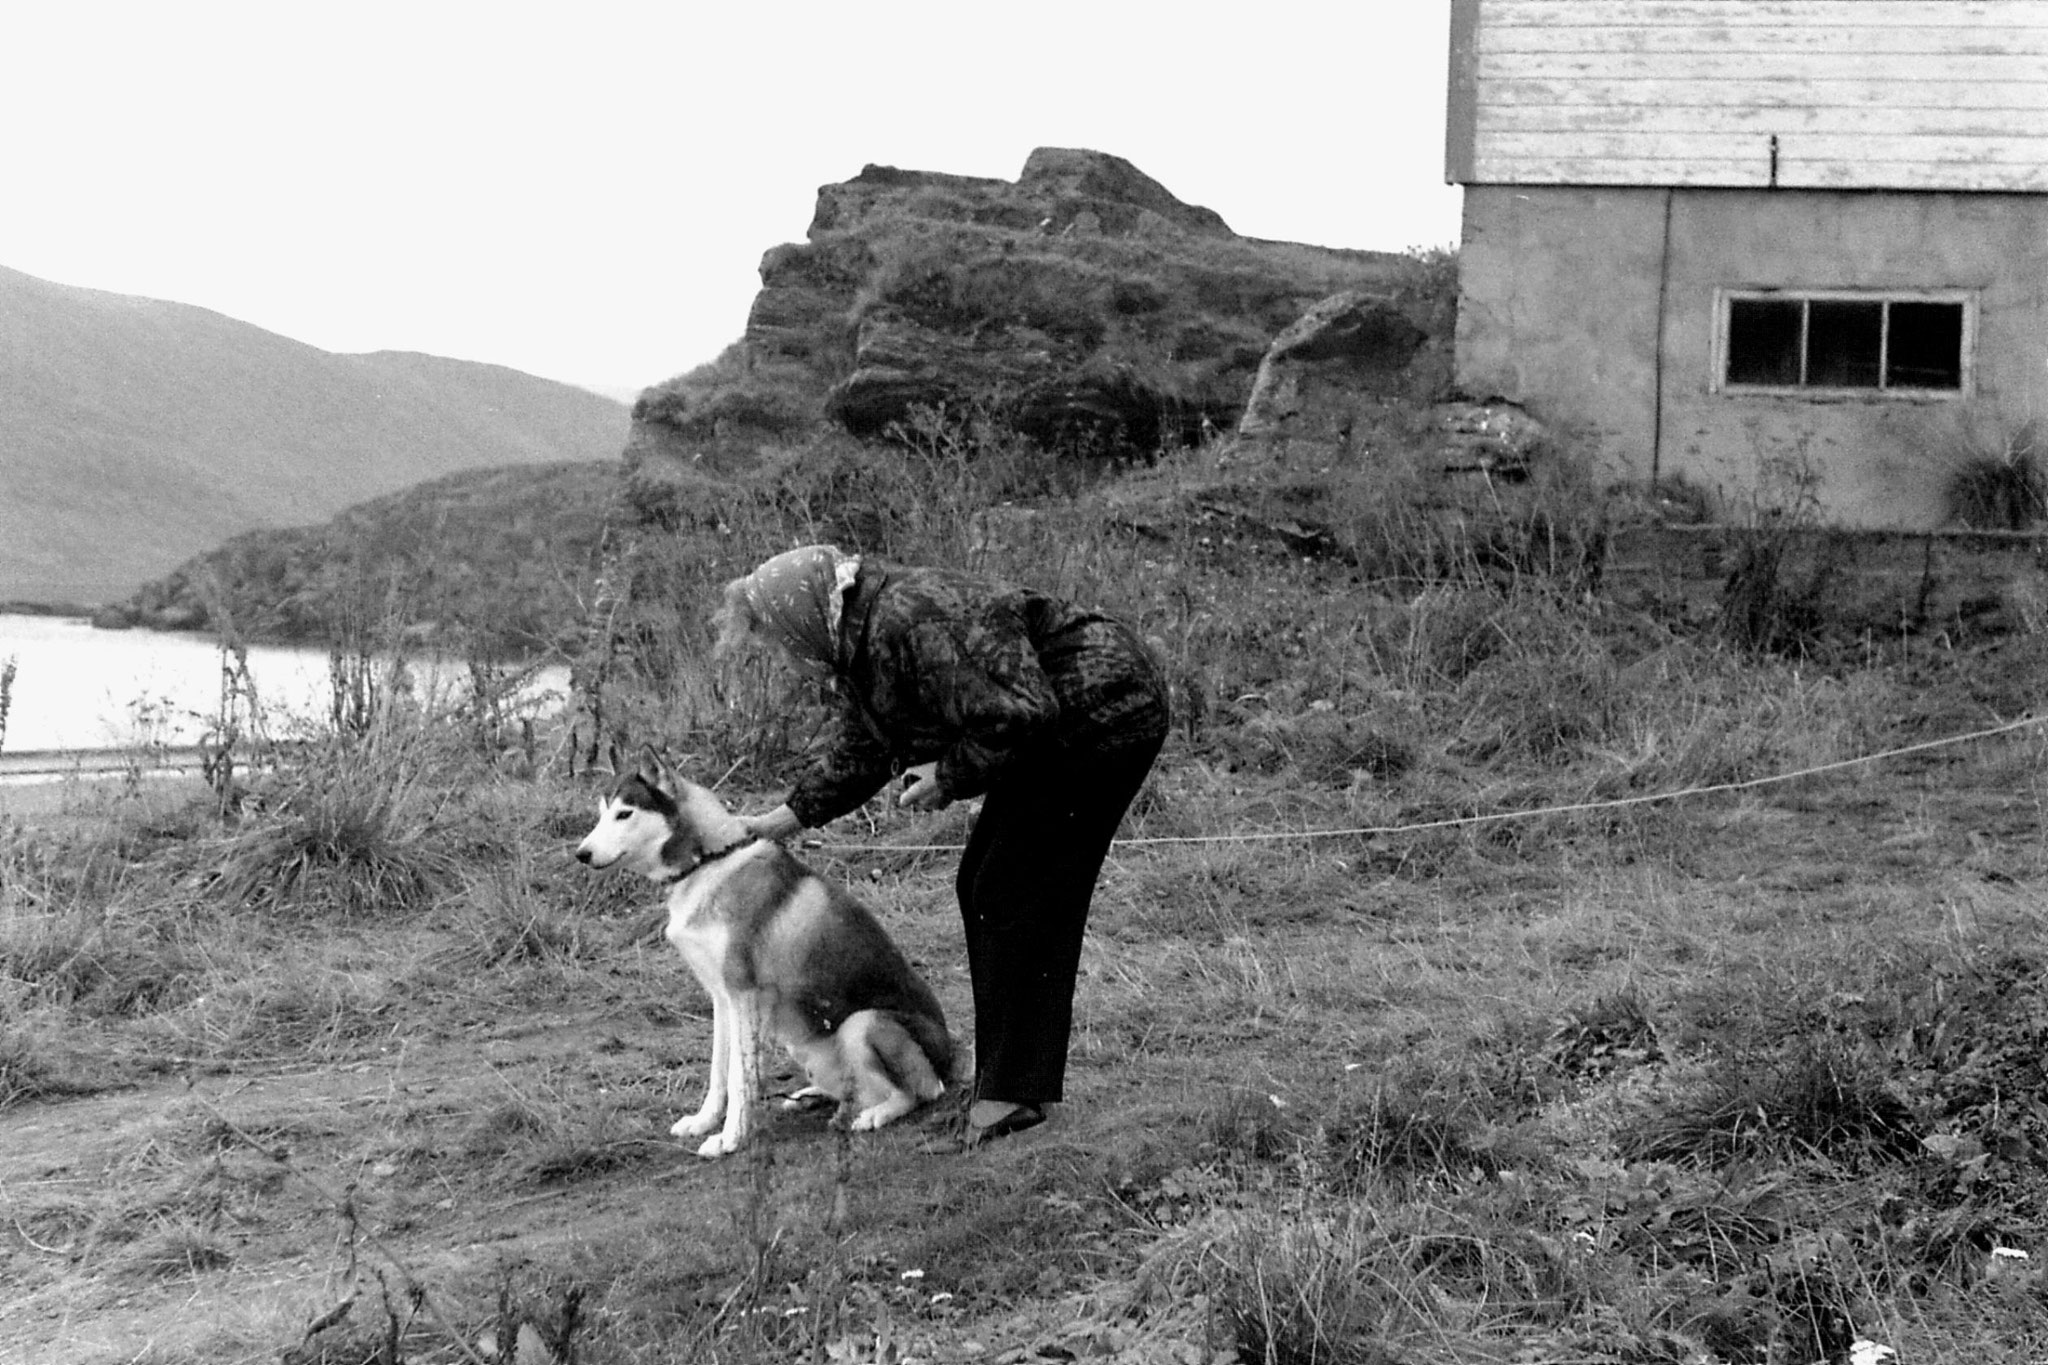 26/9/1988: 26: dog at Havoysund